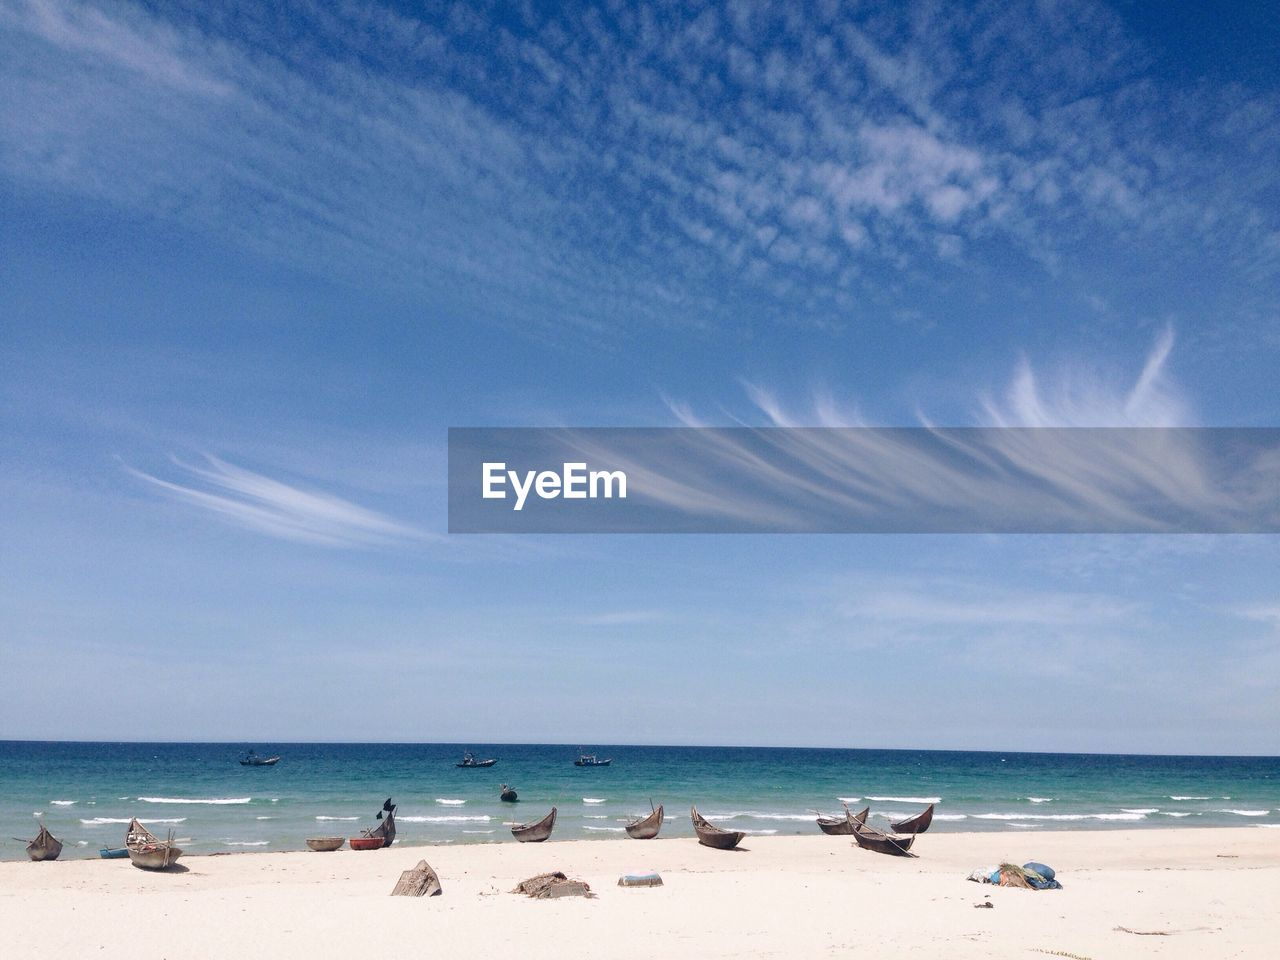 sea, beach, horizon over water, sand, sky, water, scenics, shore, beauty in nature, nature, blue, tranquility, tranquil scene, cloud - sky, outdoors, day, vacations, sunlight, no people